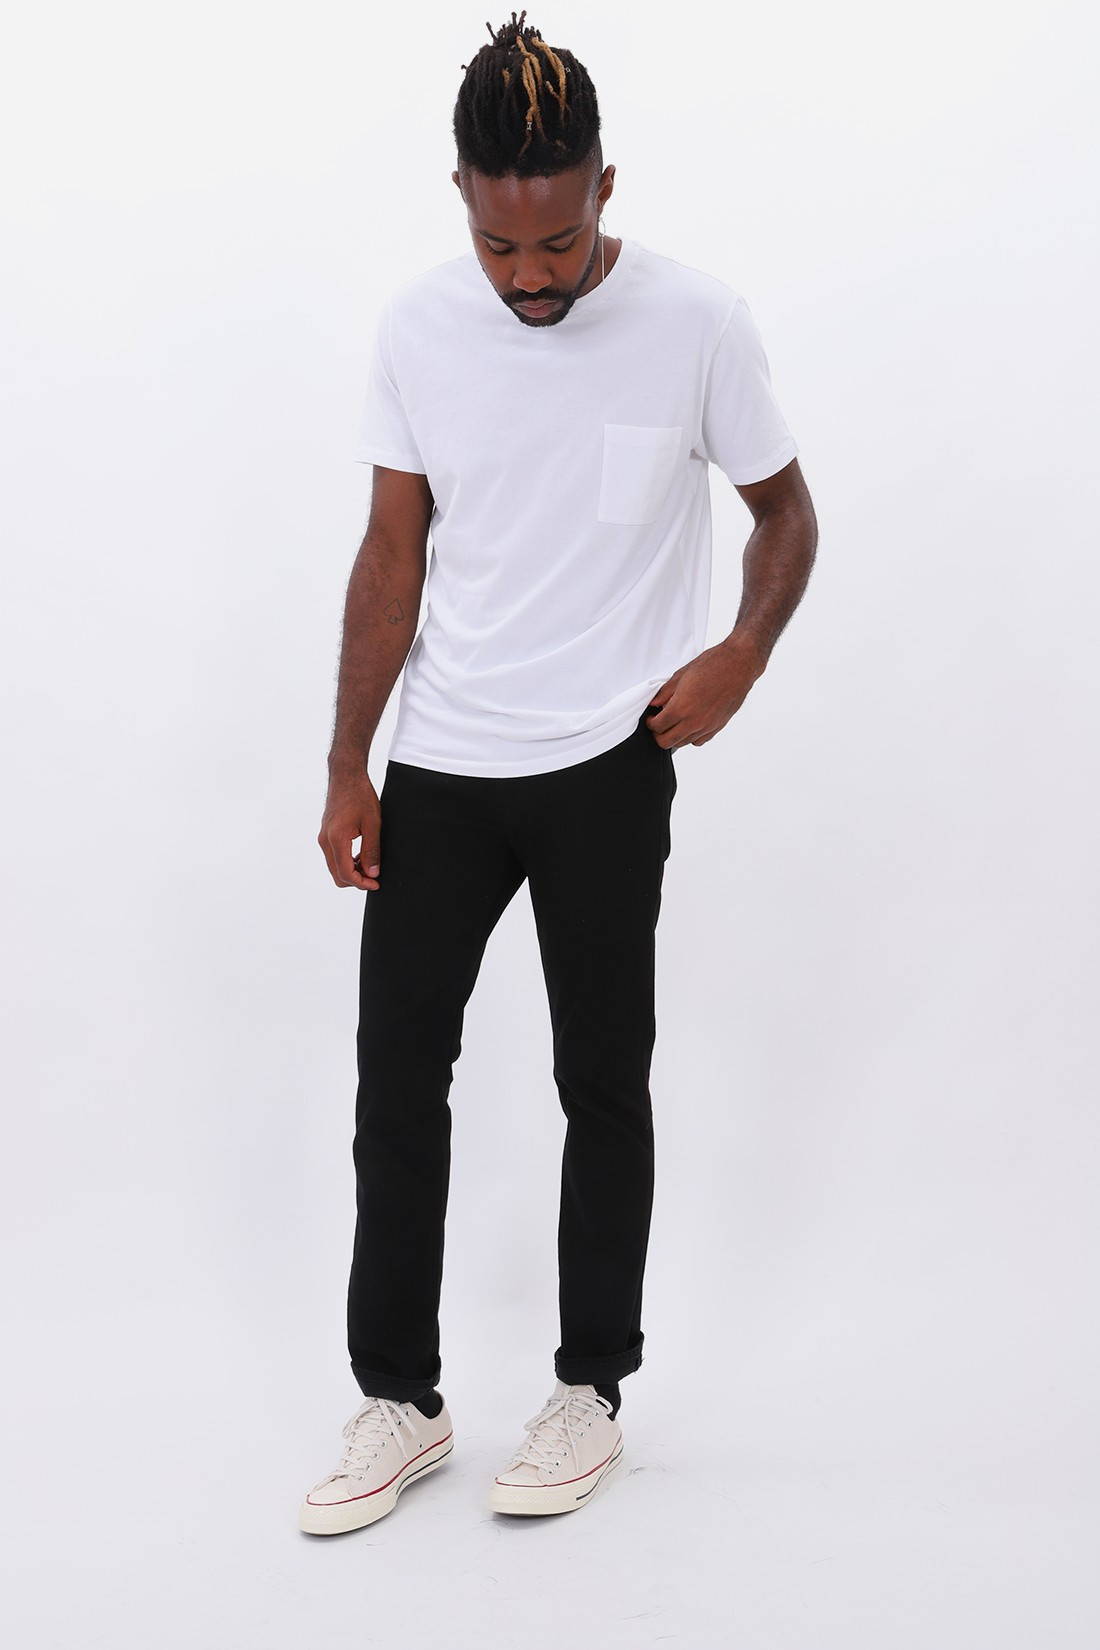 LEVIS MADE CRAFTED / Lmc 511 black denim Rinsed